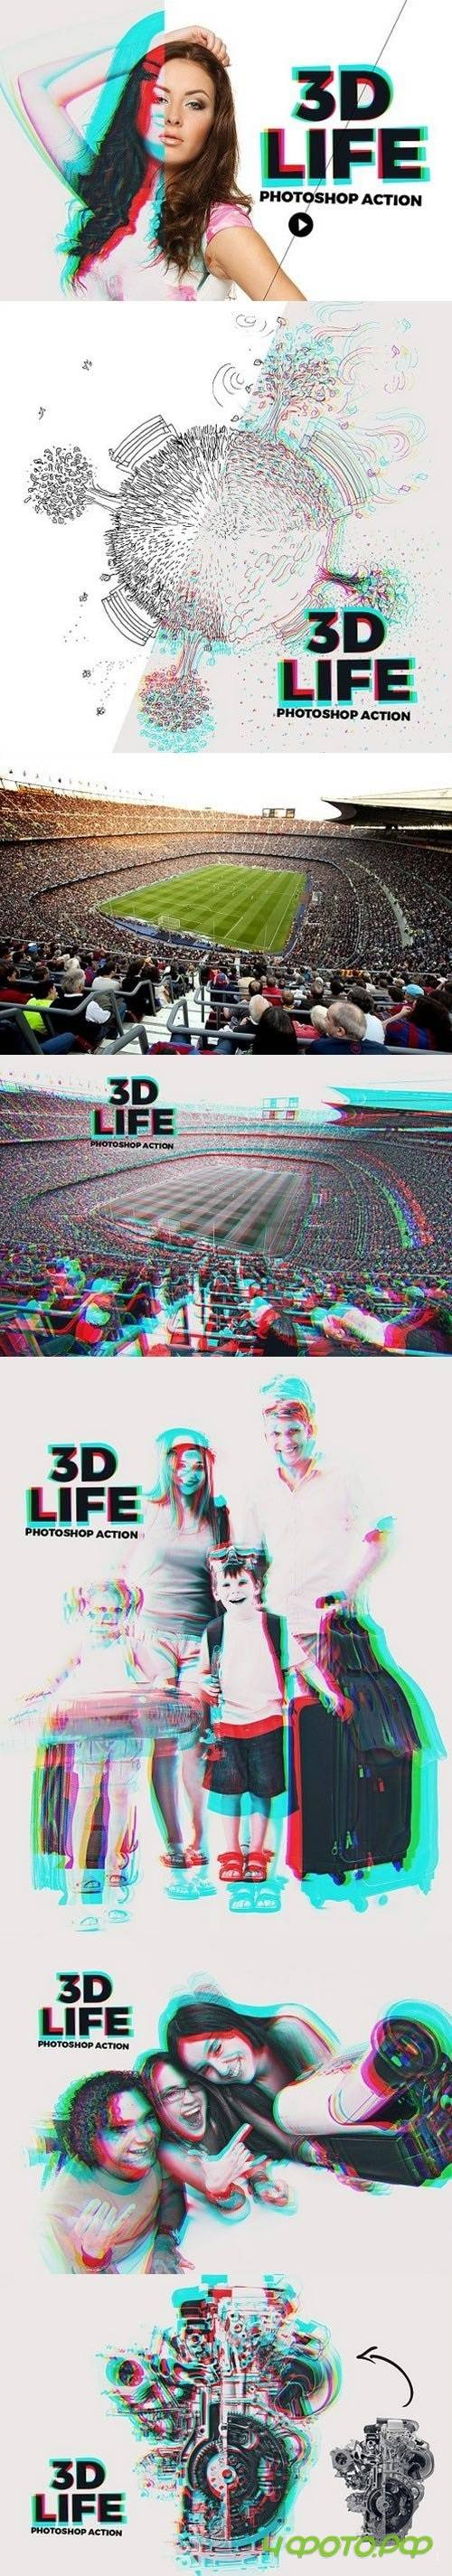 3D Life - Photoshop Action 1605107